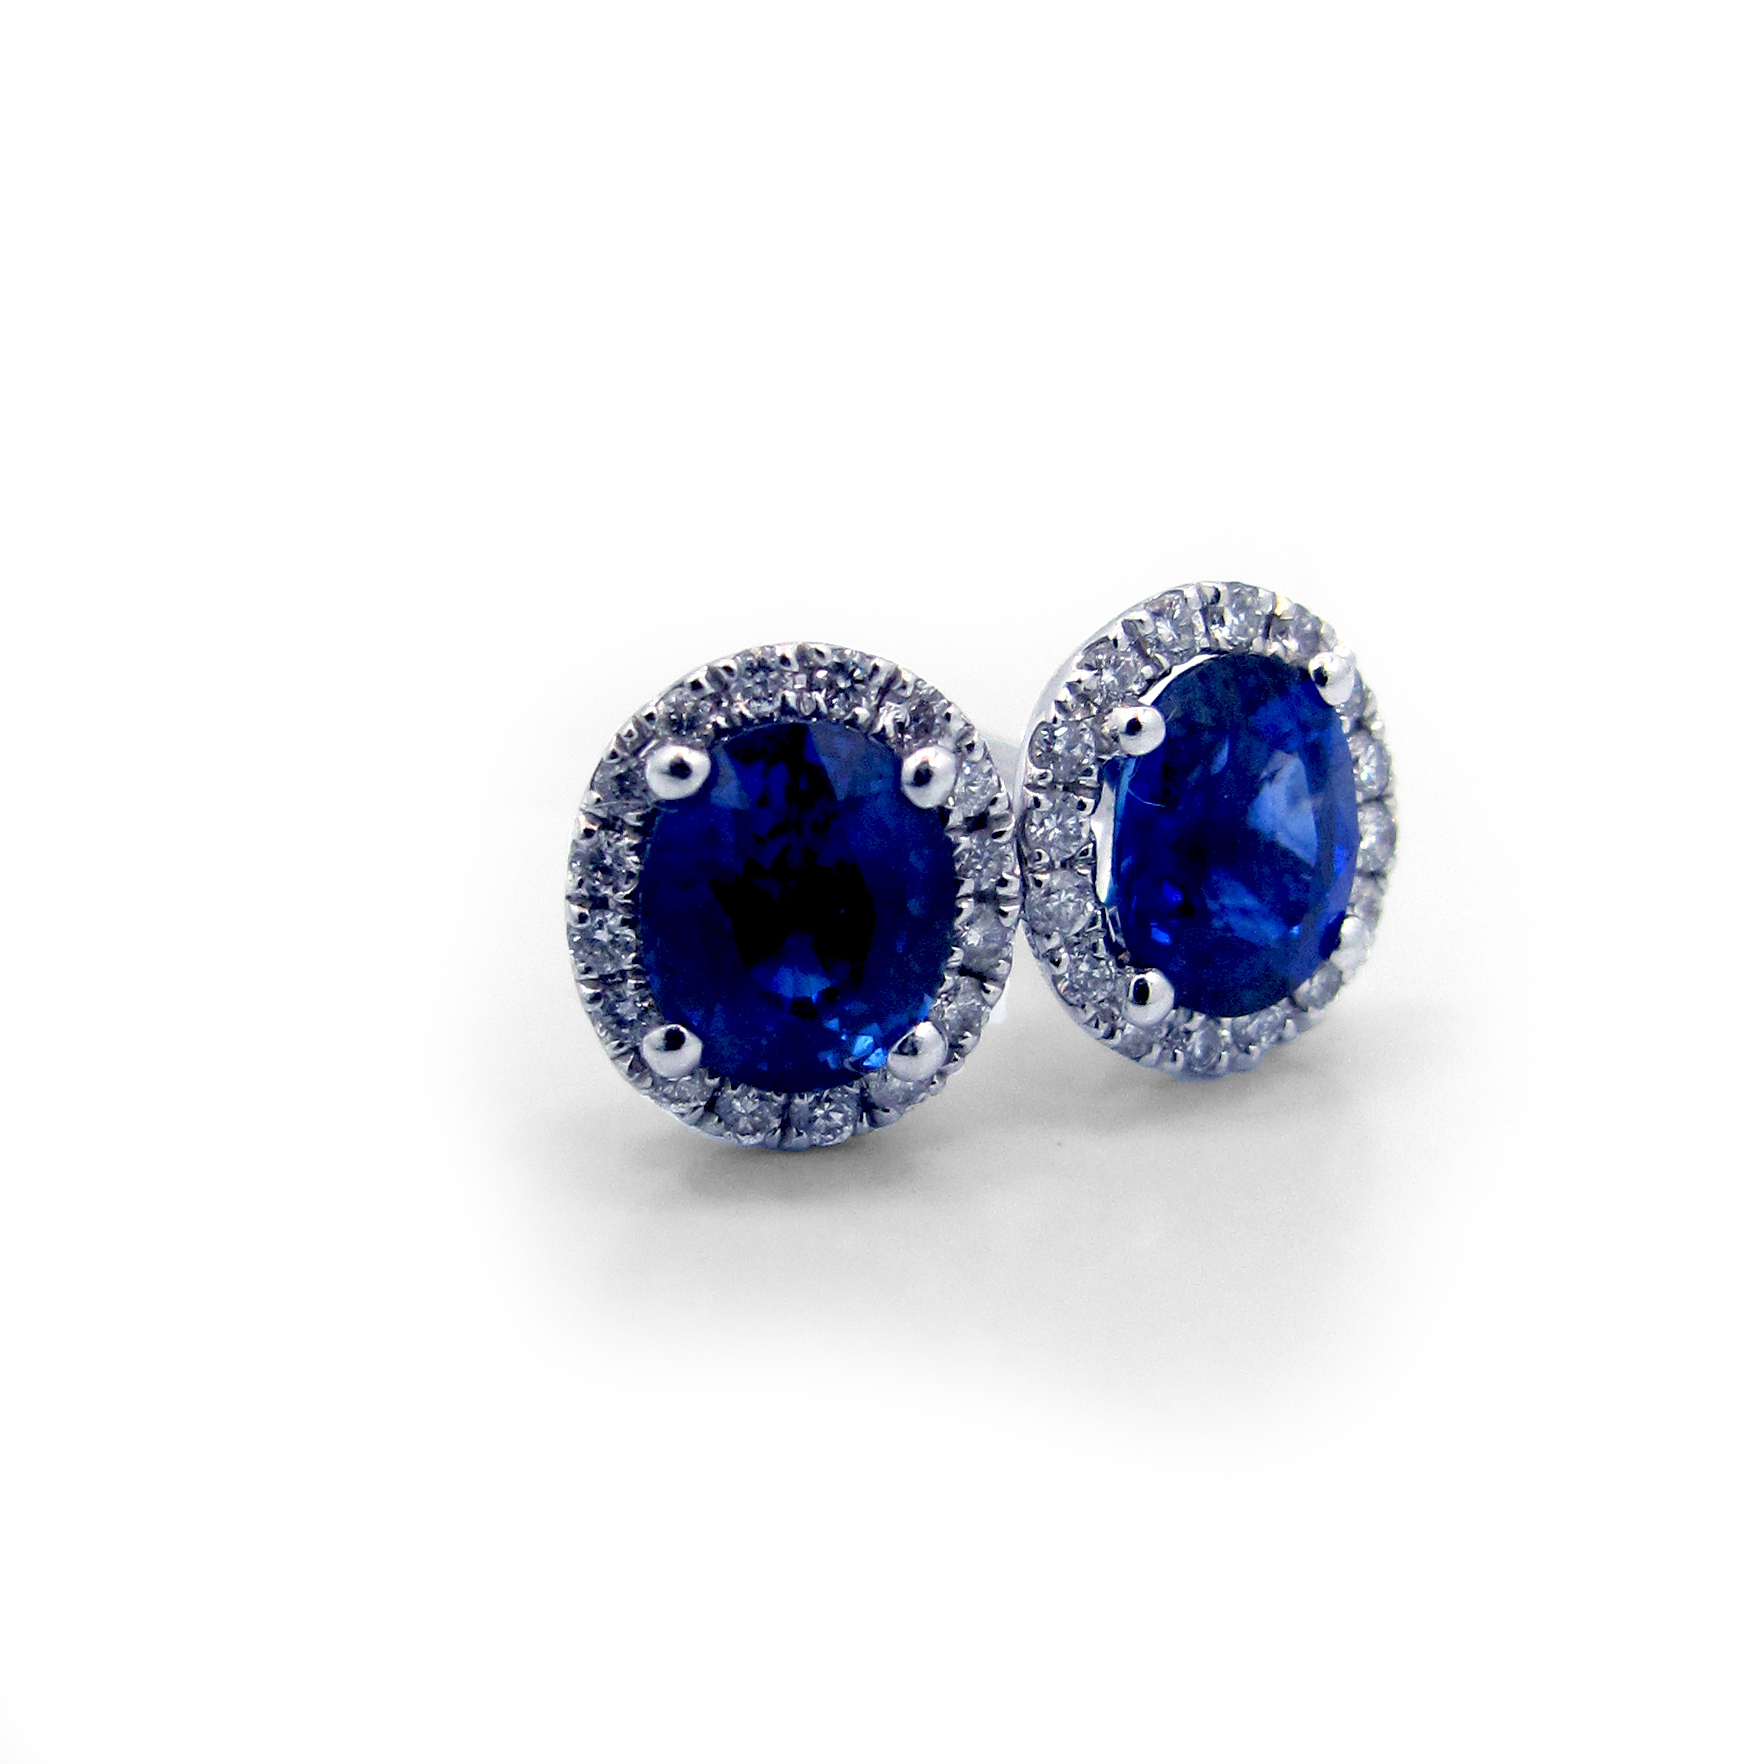 jewelry saphire created sapphire lab heart k studs star com finejewelers earrings